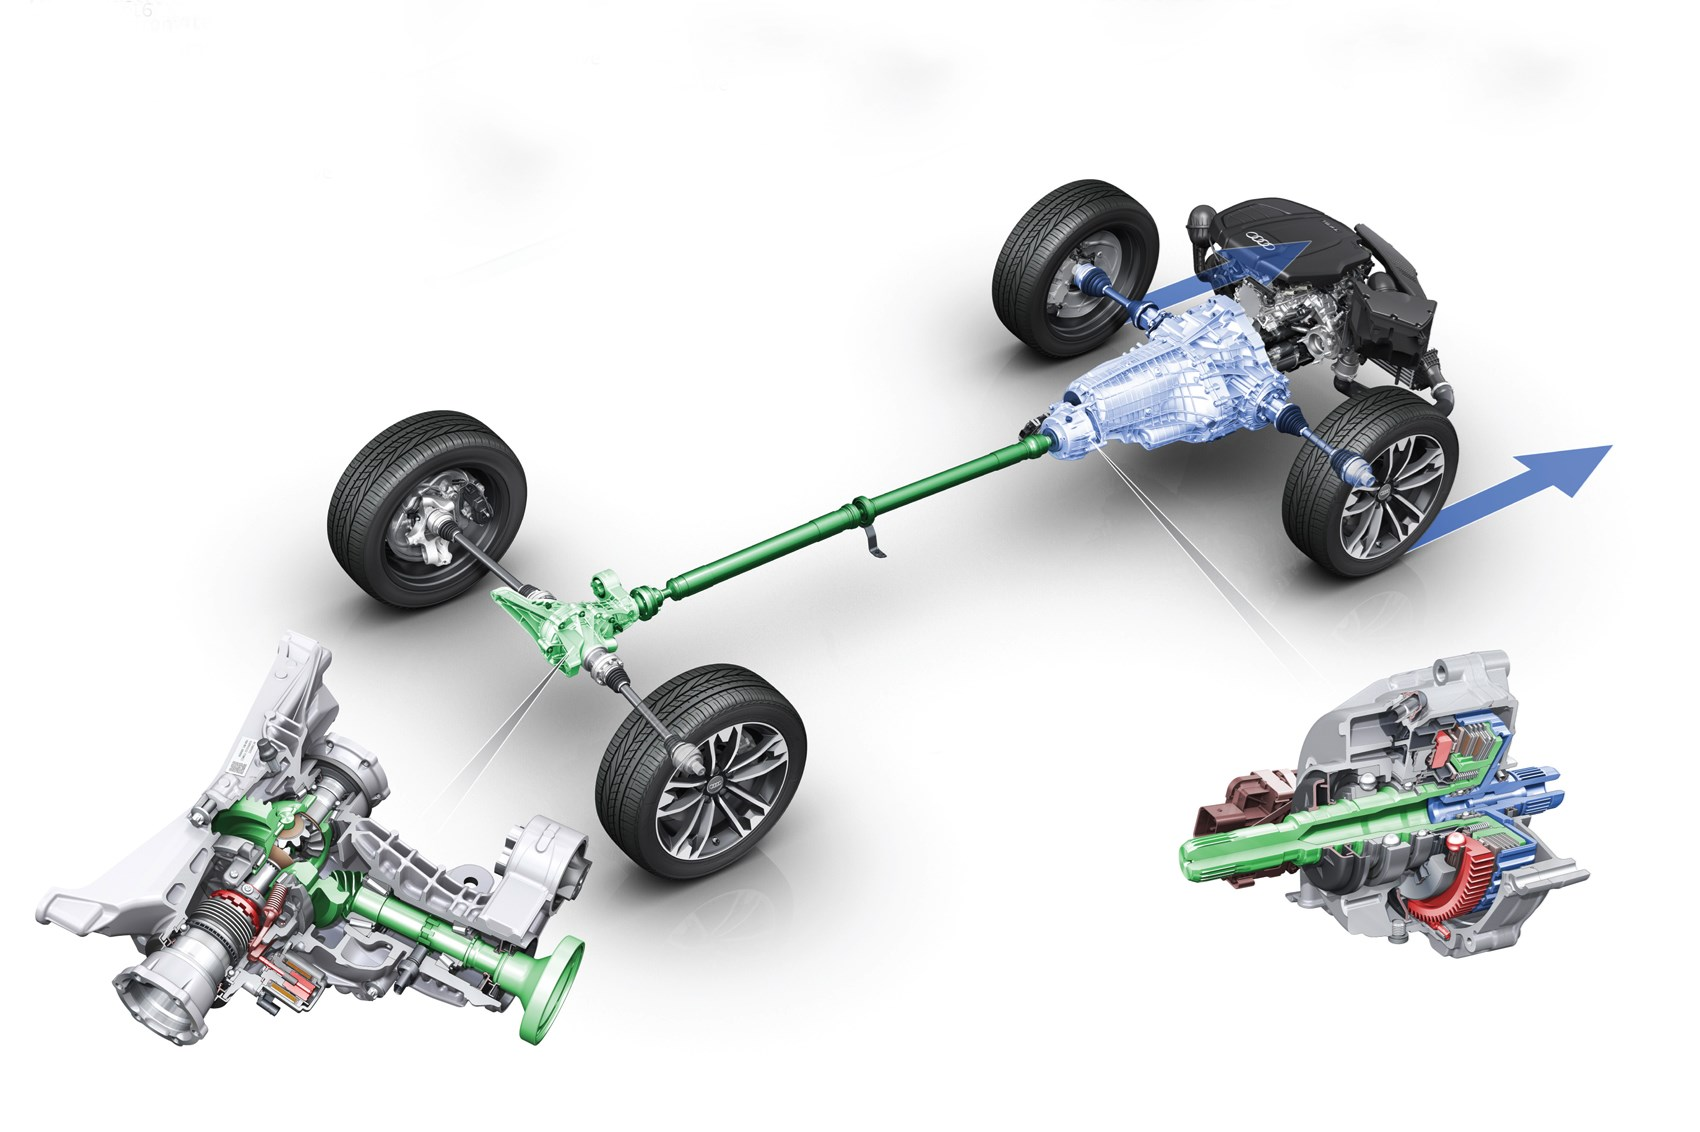 nissan cvt awd diagram vw awd diagram review: audi's new-for-2016 'quattro with ultra' all-wheel ... #1